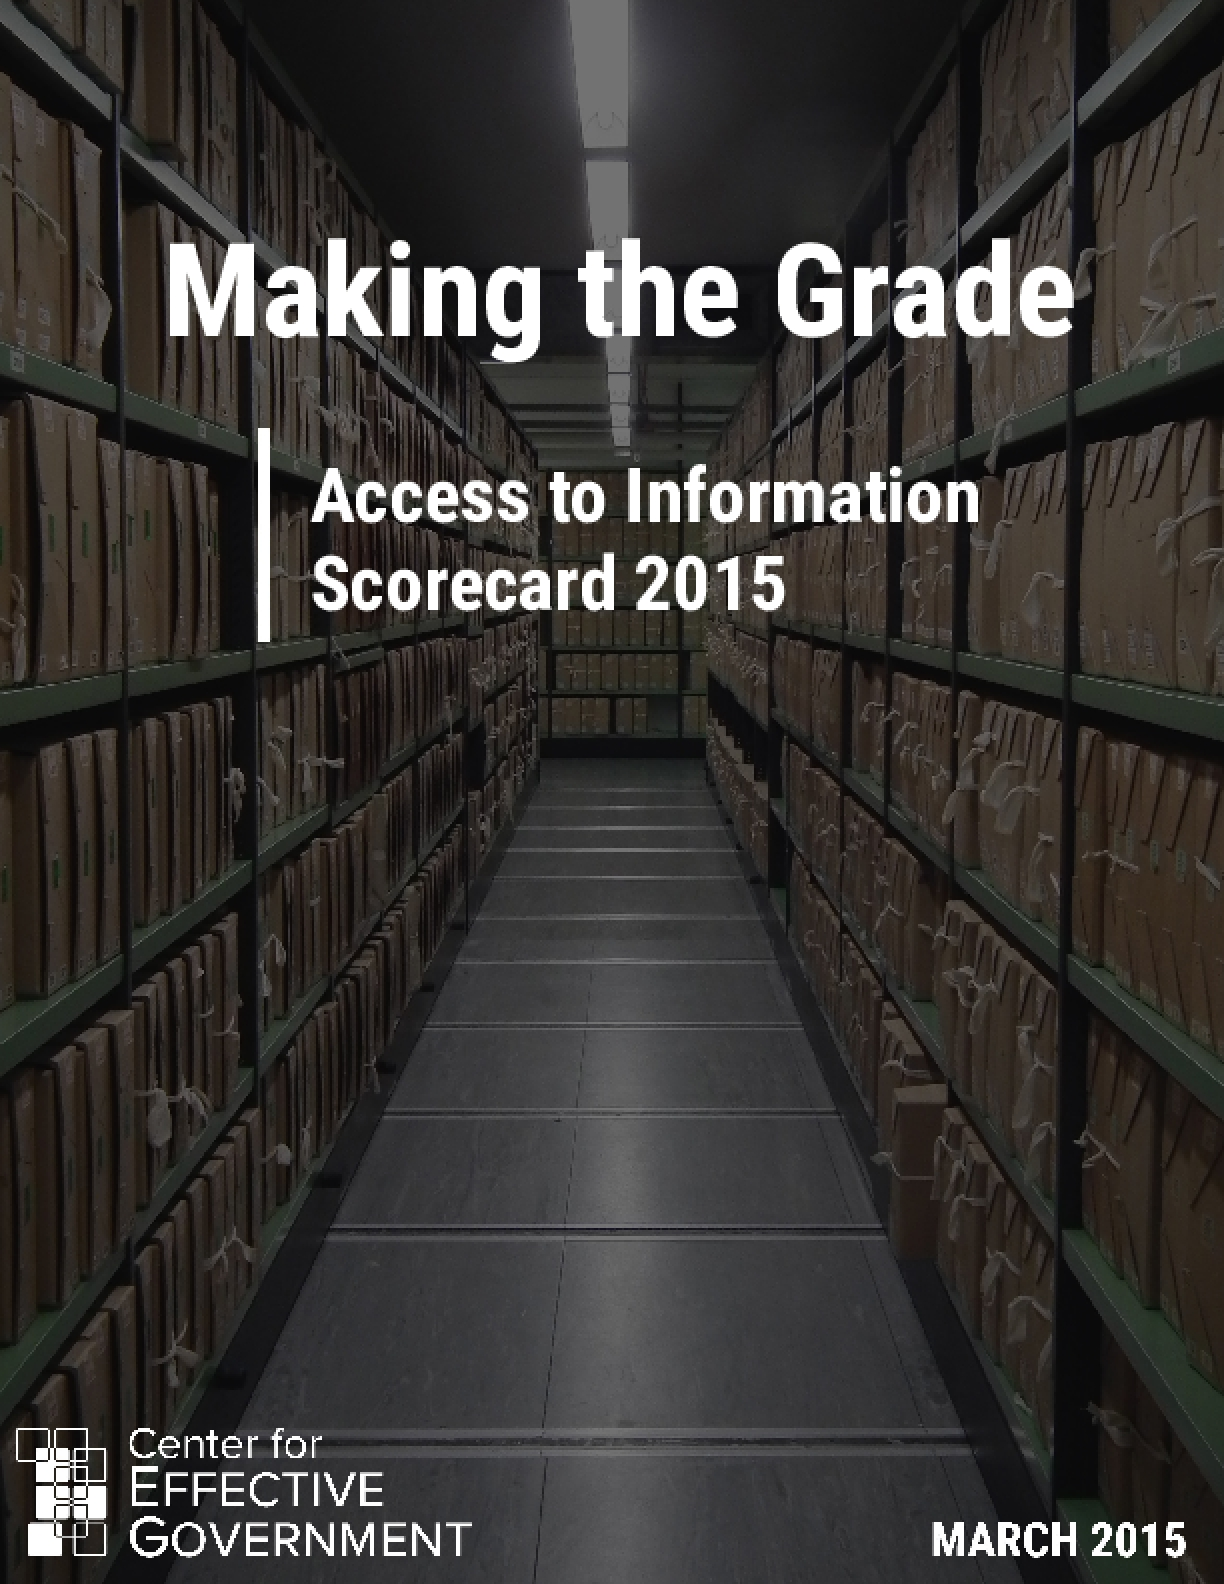 Making the Grade: Access to Information Scorecard 2015